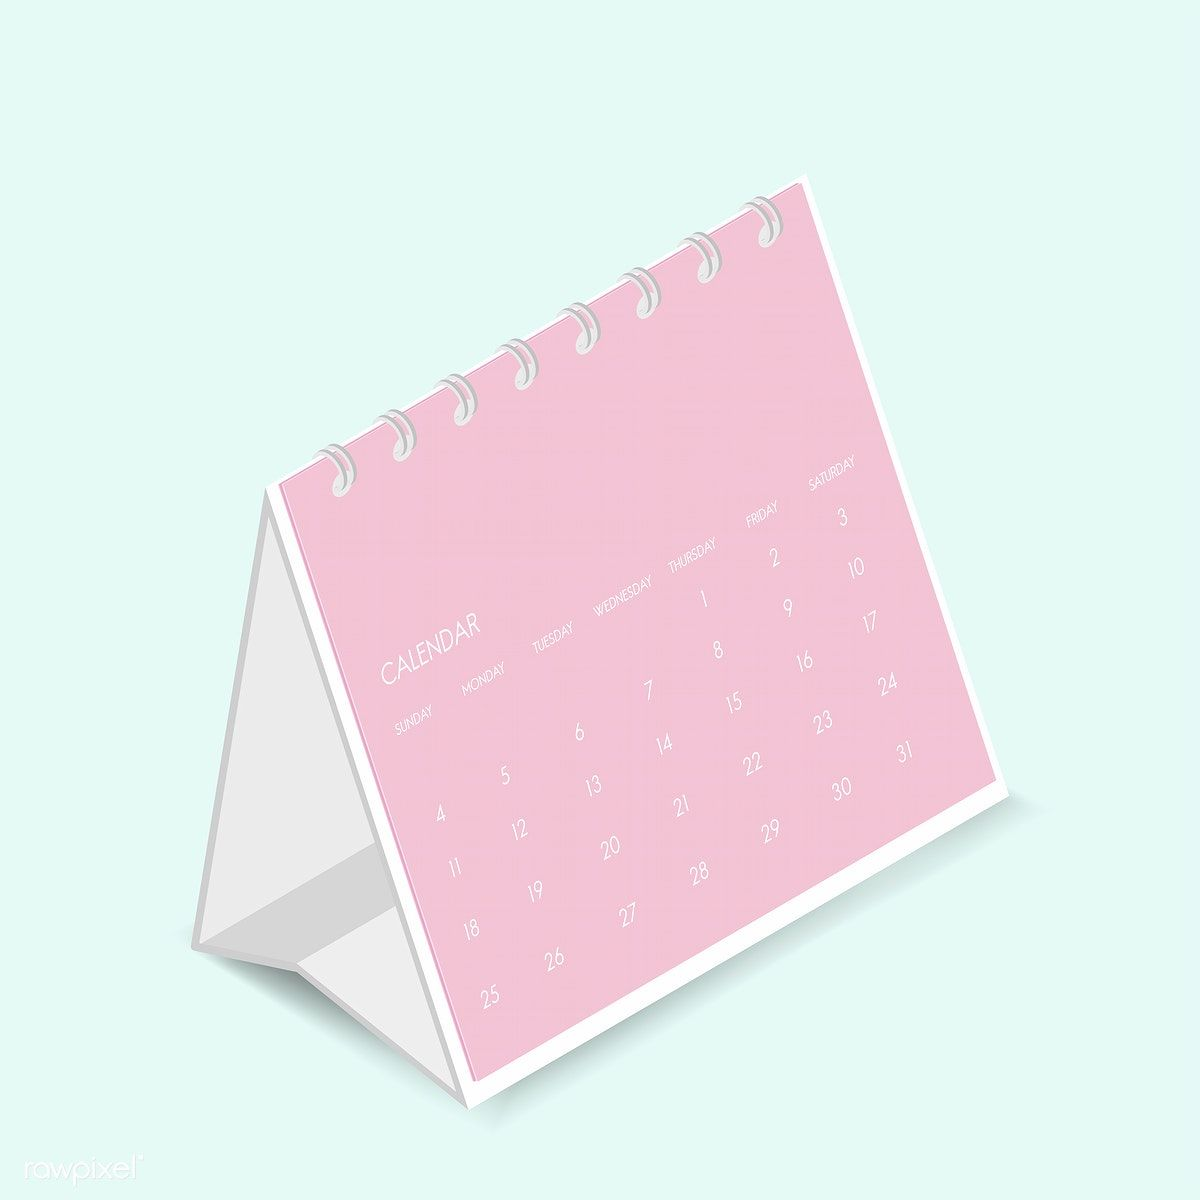 Vector Of Calendar Icon Free Image By Rawpixel Com Calendar Icon Calendar Logo Pink Calendar